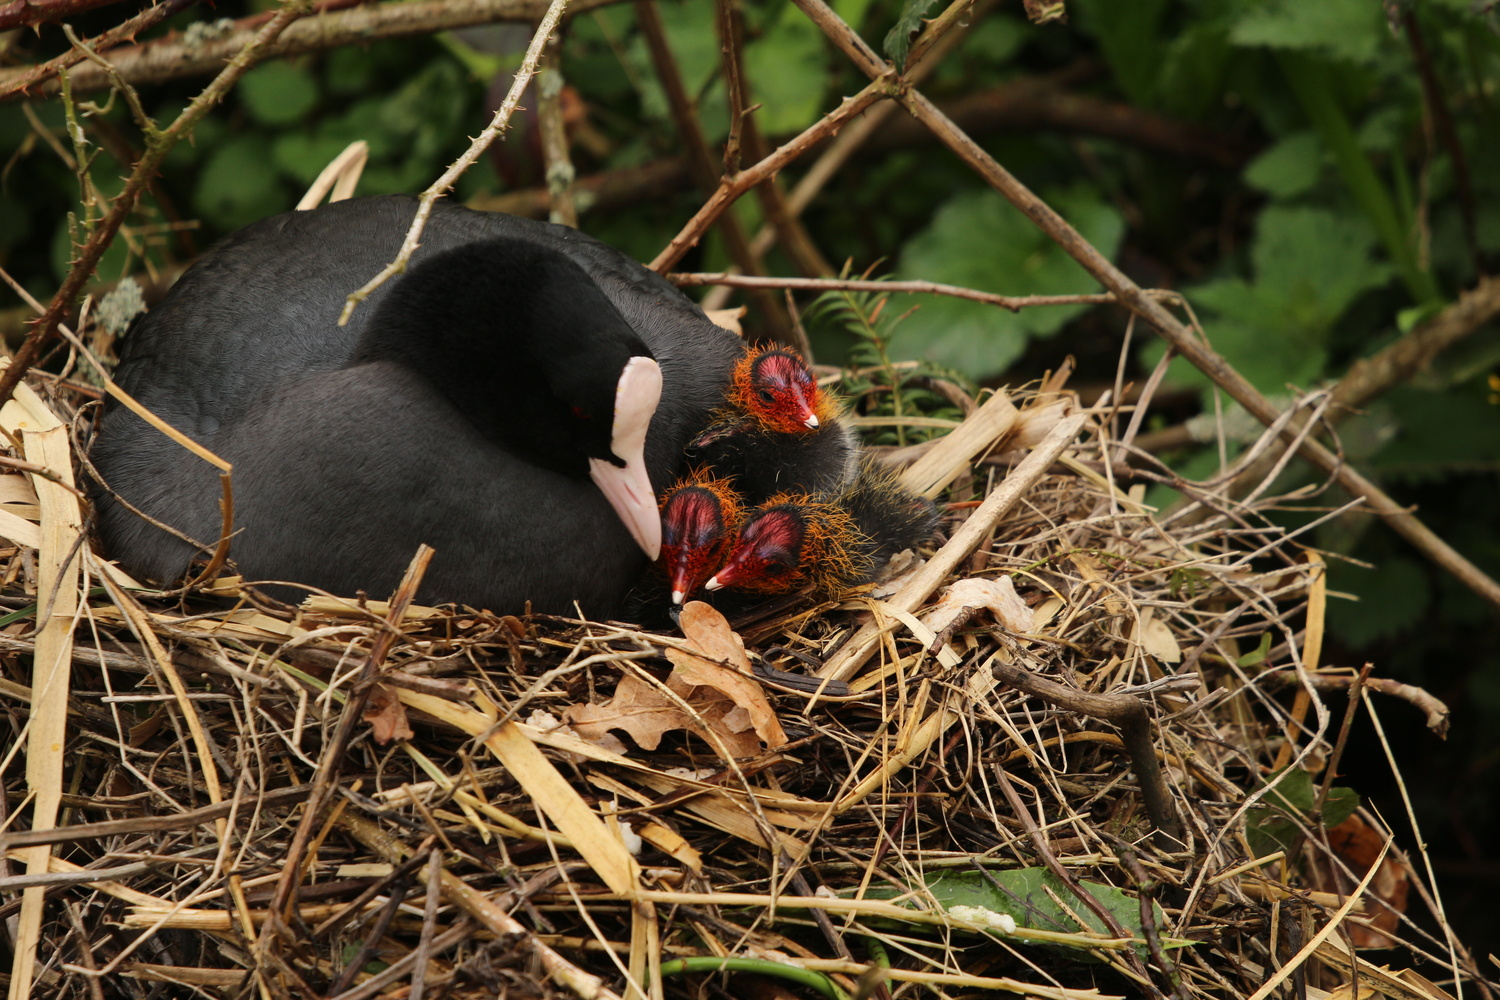 Coot chicks by Kevin Sanders